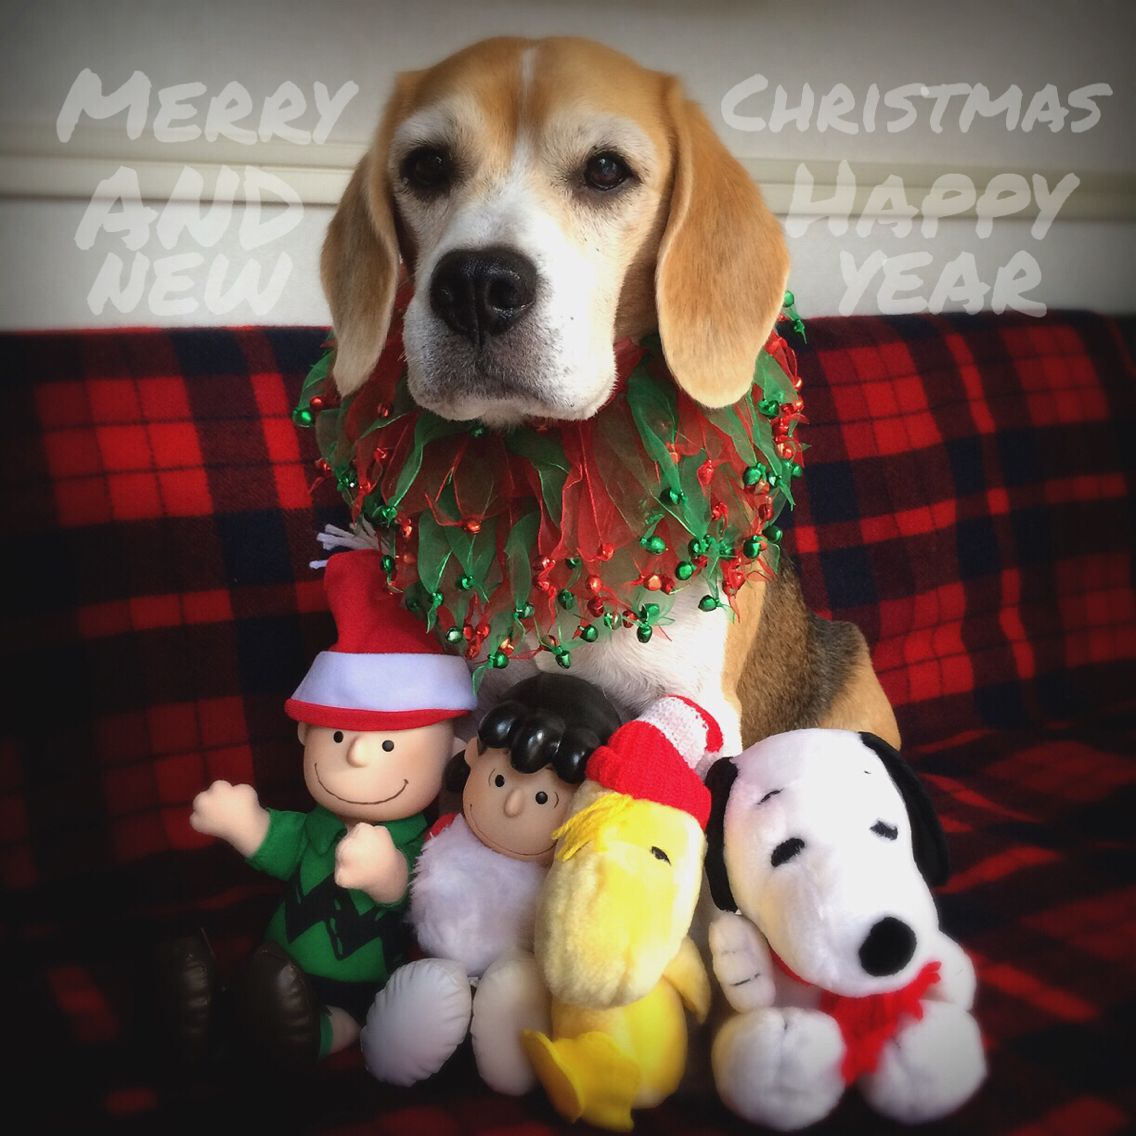 Best Snoopy Beagle Beagle Adorable Dog - 761d9387c90b26fbf48d1fb0c94a3025  Picture_211092  .jpg